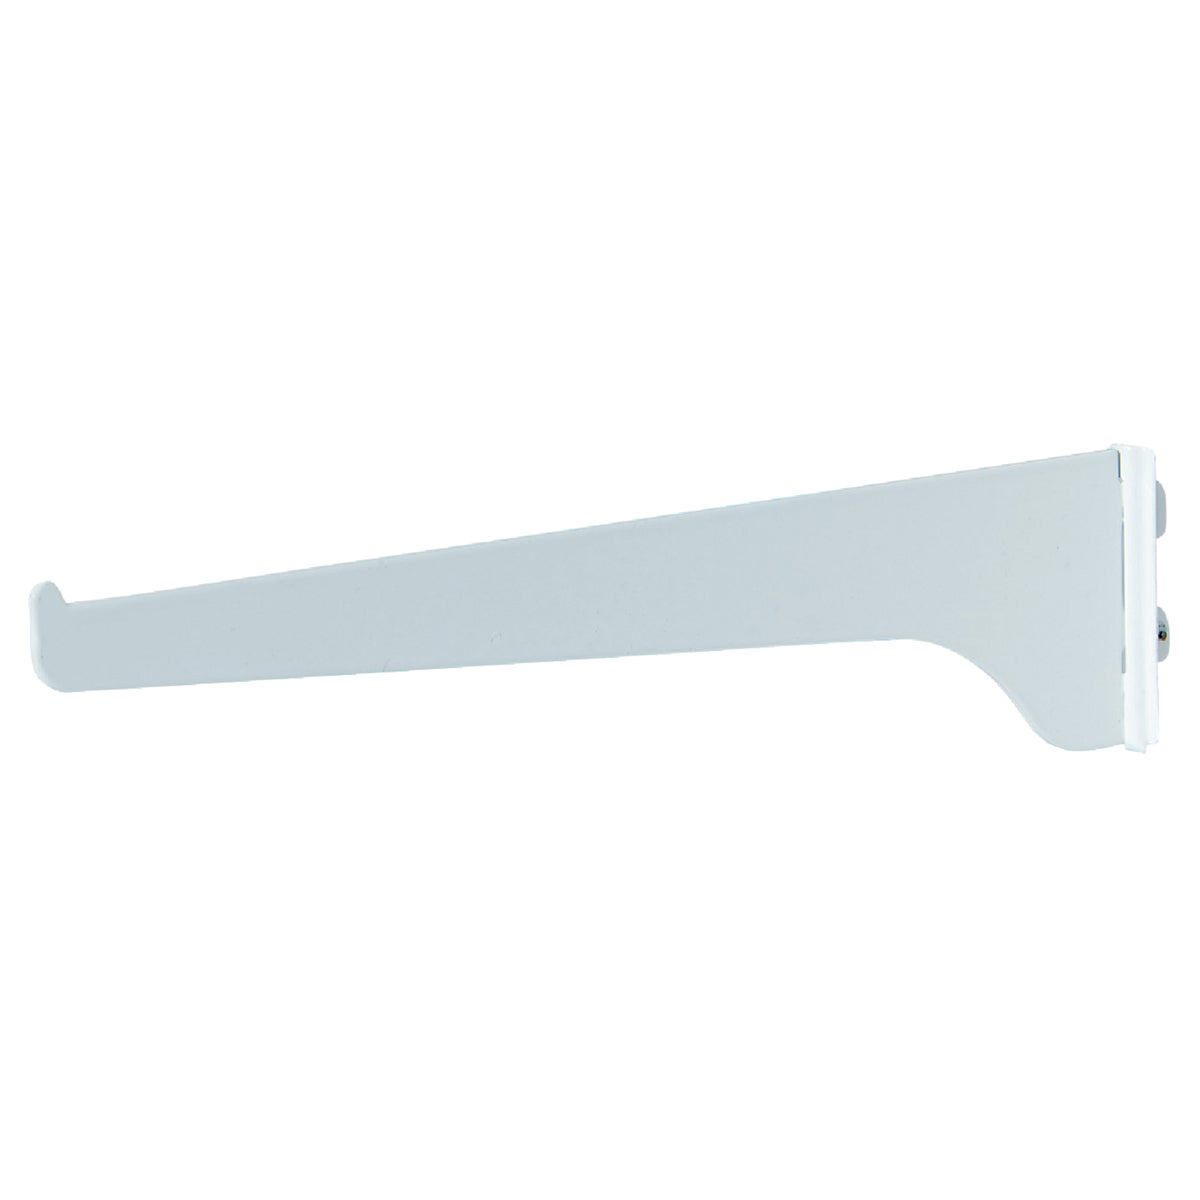 "10"" WHITE BRACKET - 180WH by Knape & Vogt Mfg Co"